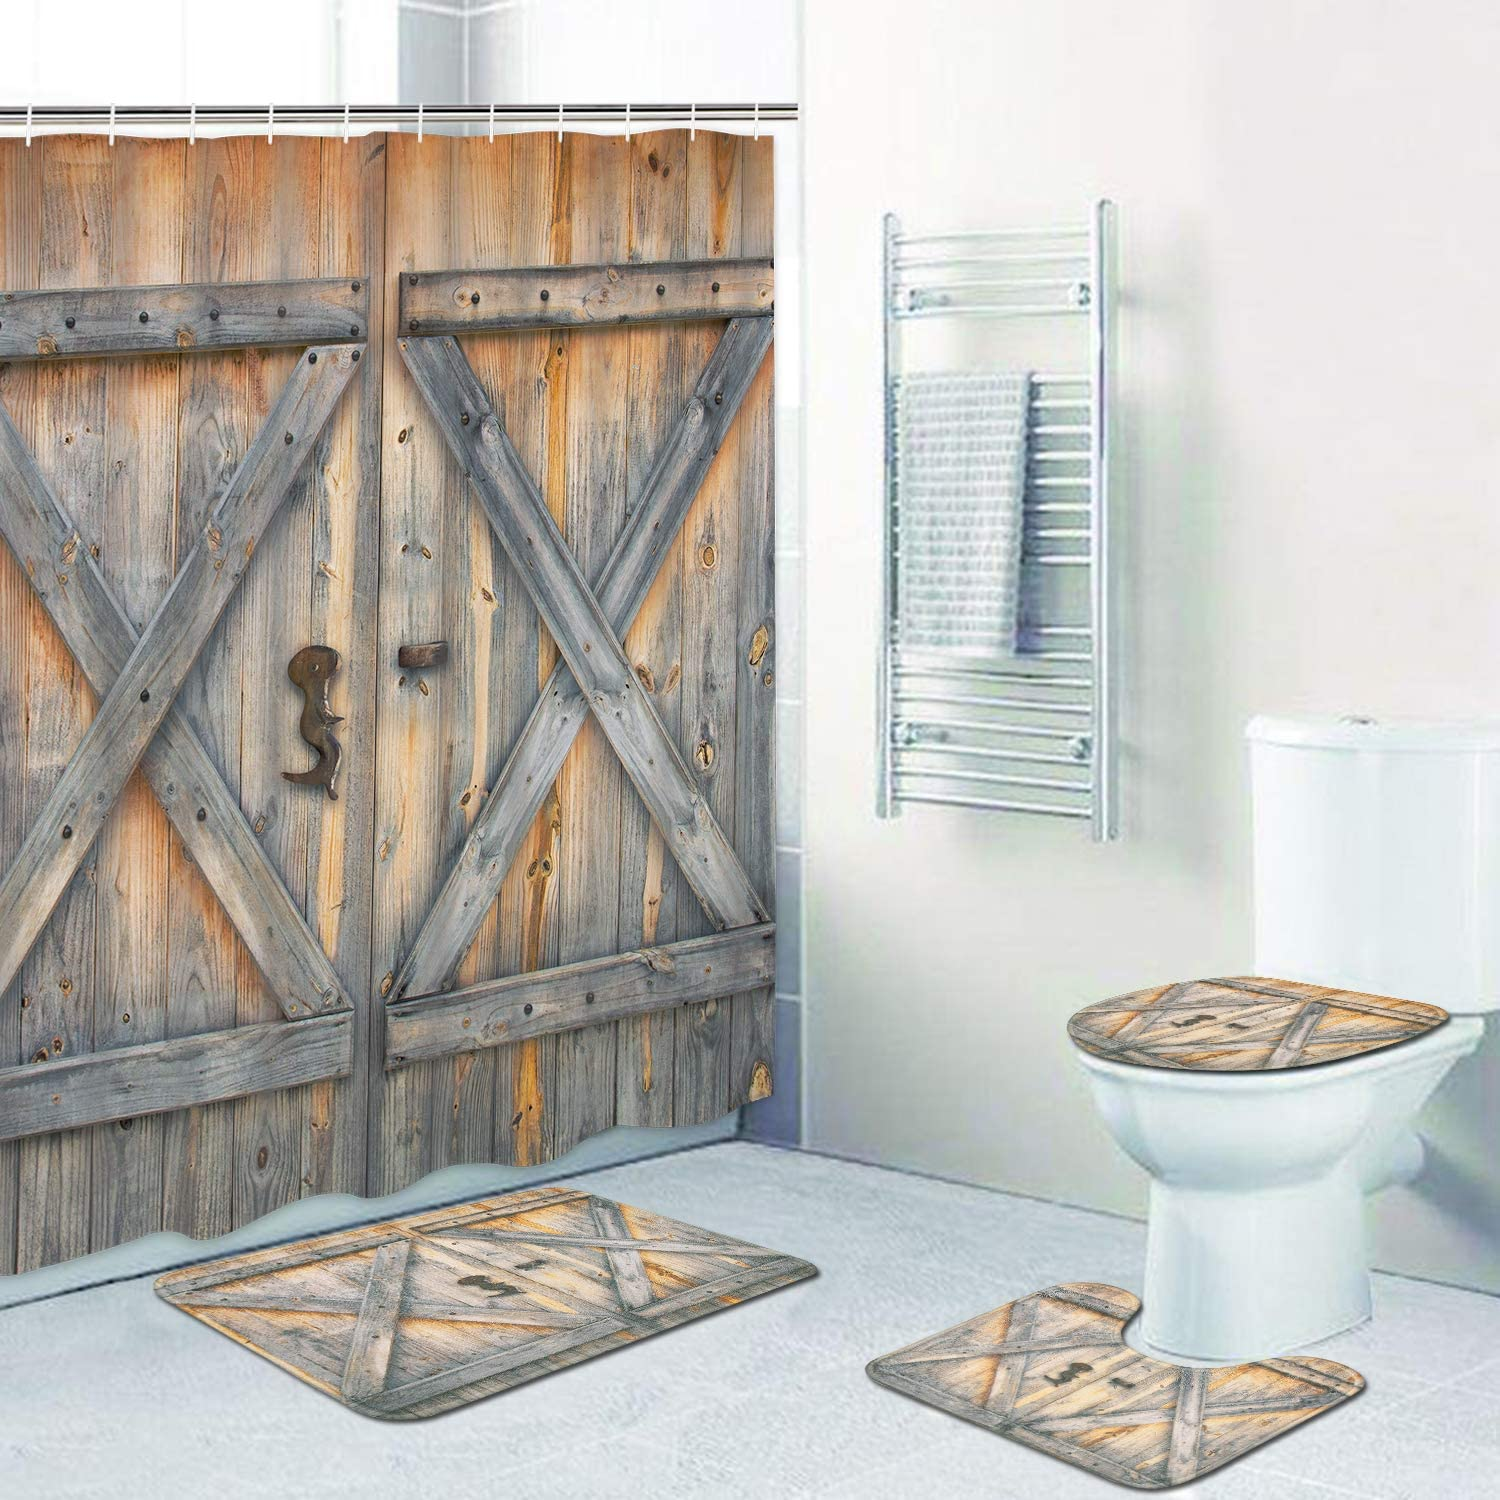 4 pcs rustic barn door shower curtain set with non slip rug toilet lid cover bath mat and 12 hooks vintage wooden gate waterproof shower curtain